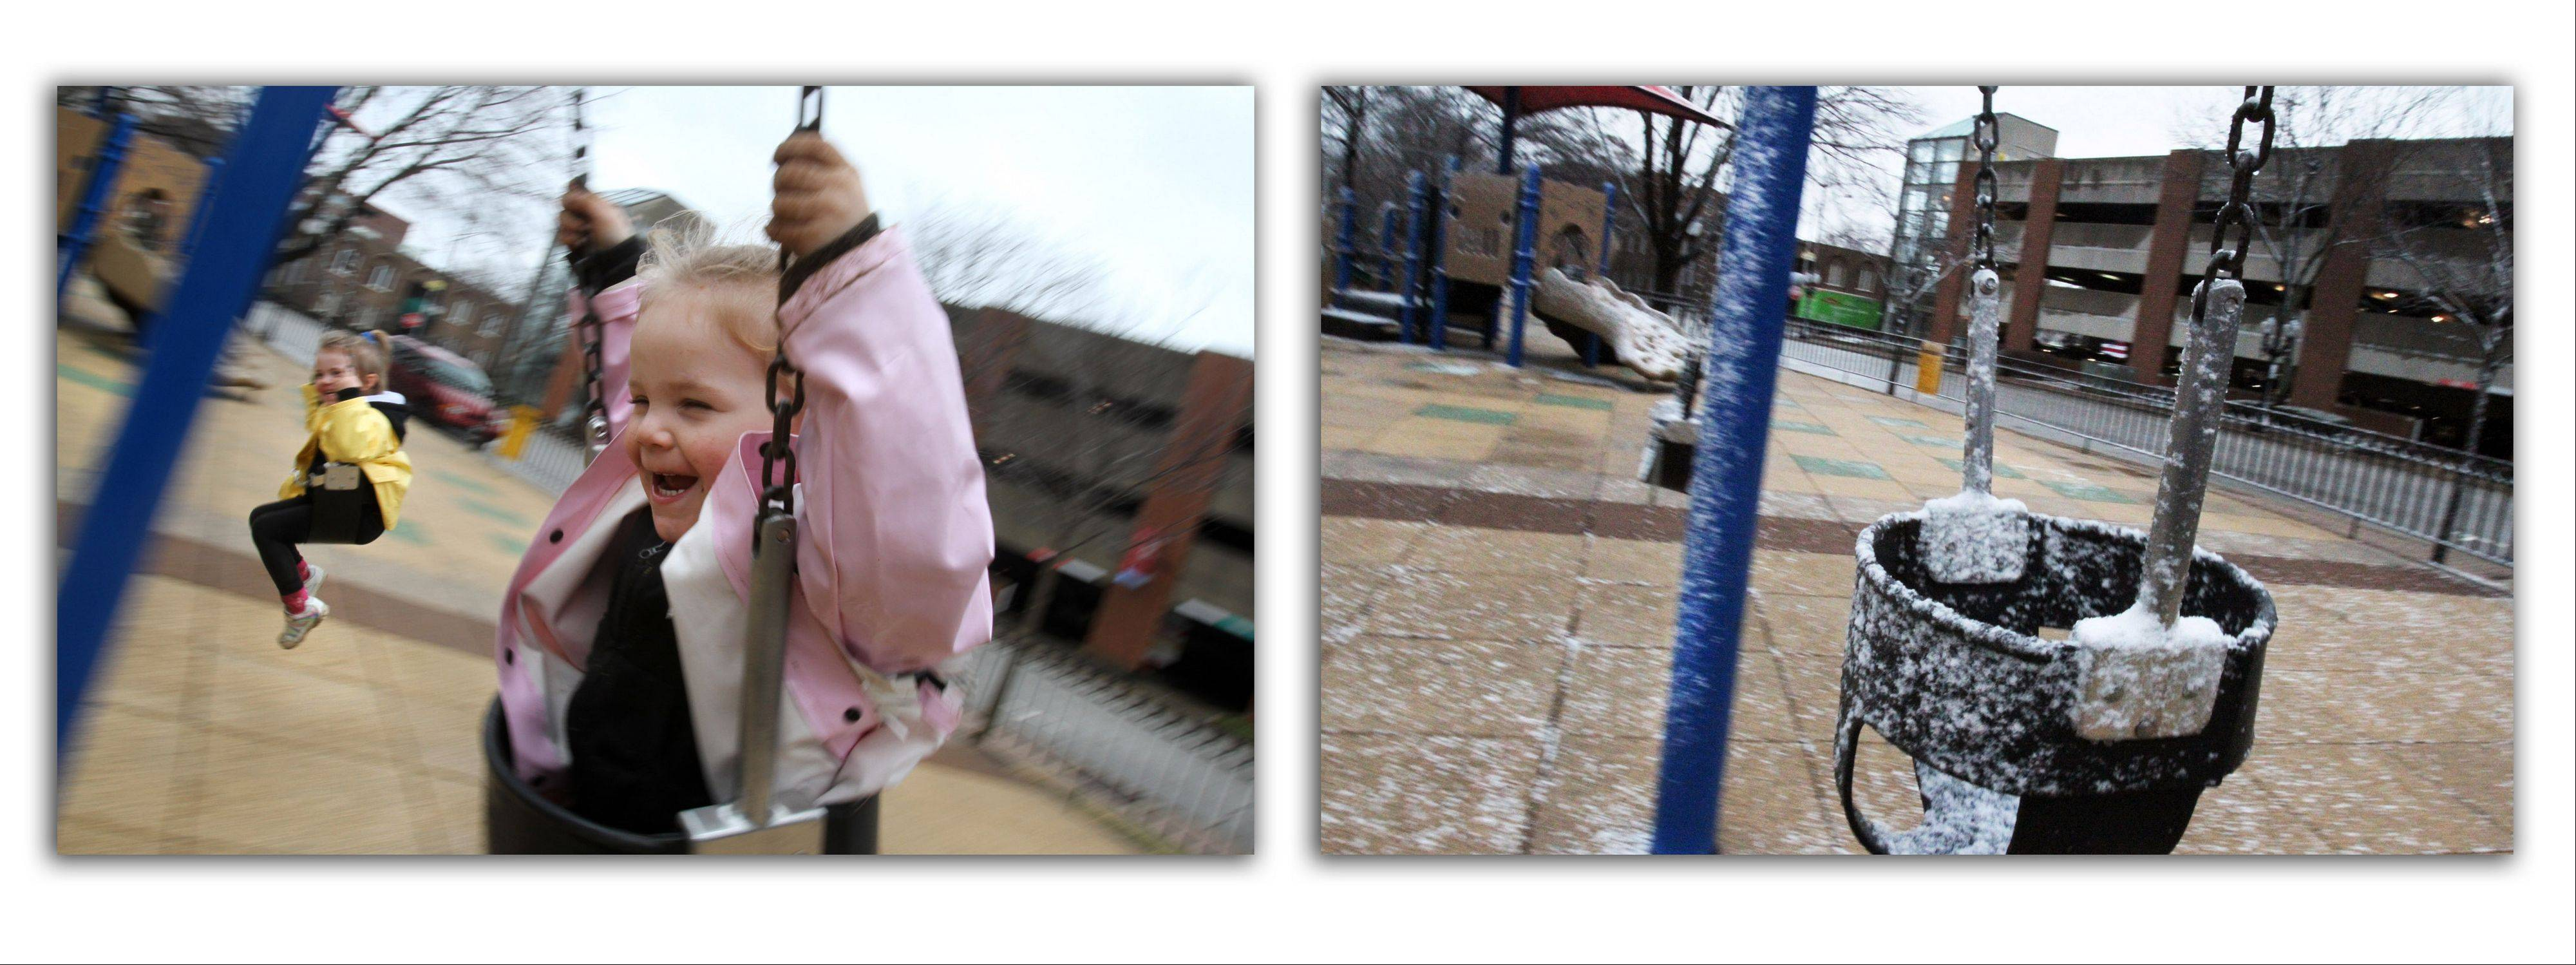 On Tuesday, 3-year-old Madalynn Kerley, sister Melody, 4, and mother Michelle, all of Palatine, enjoyed the swing and 60-degree temperatures at North School Park in Arlington Heights. On Wednesday, snow and freezing rain moved in.